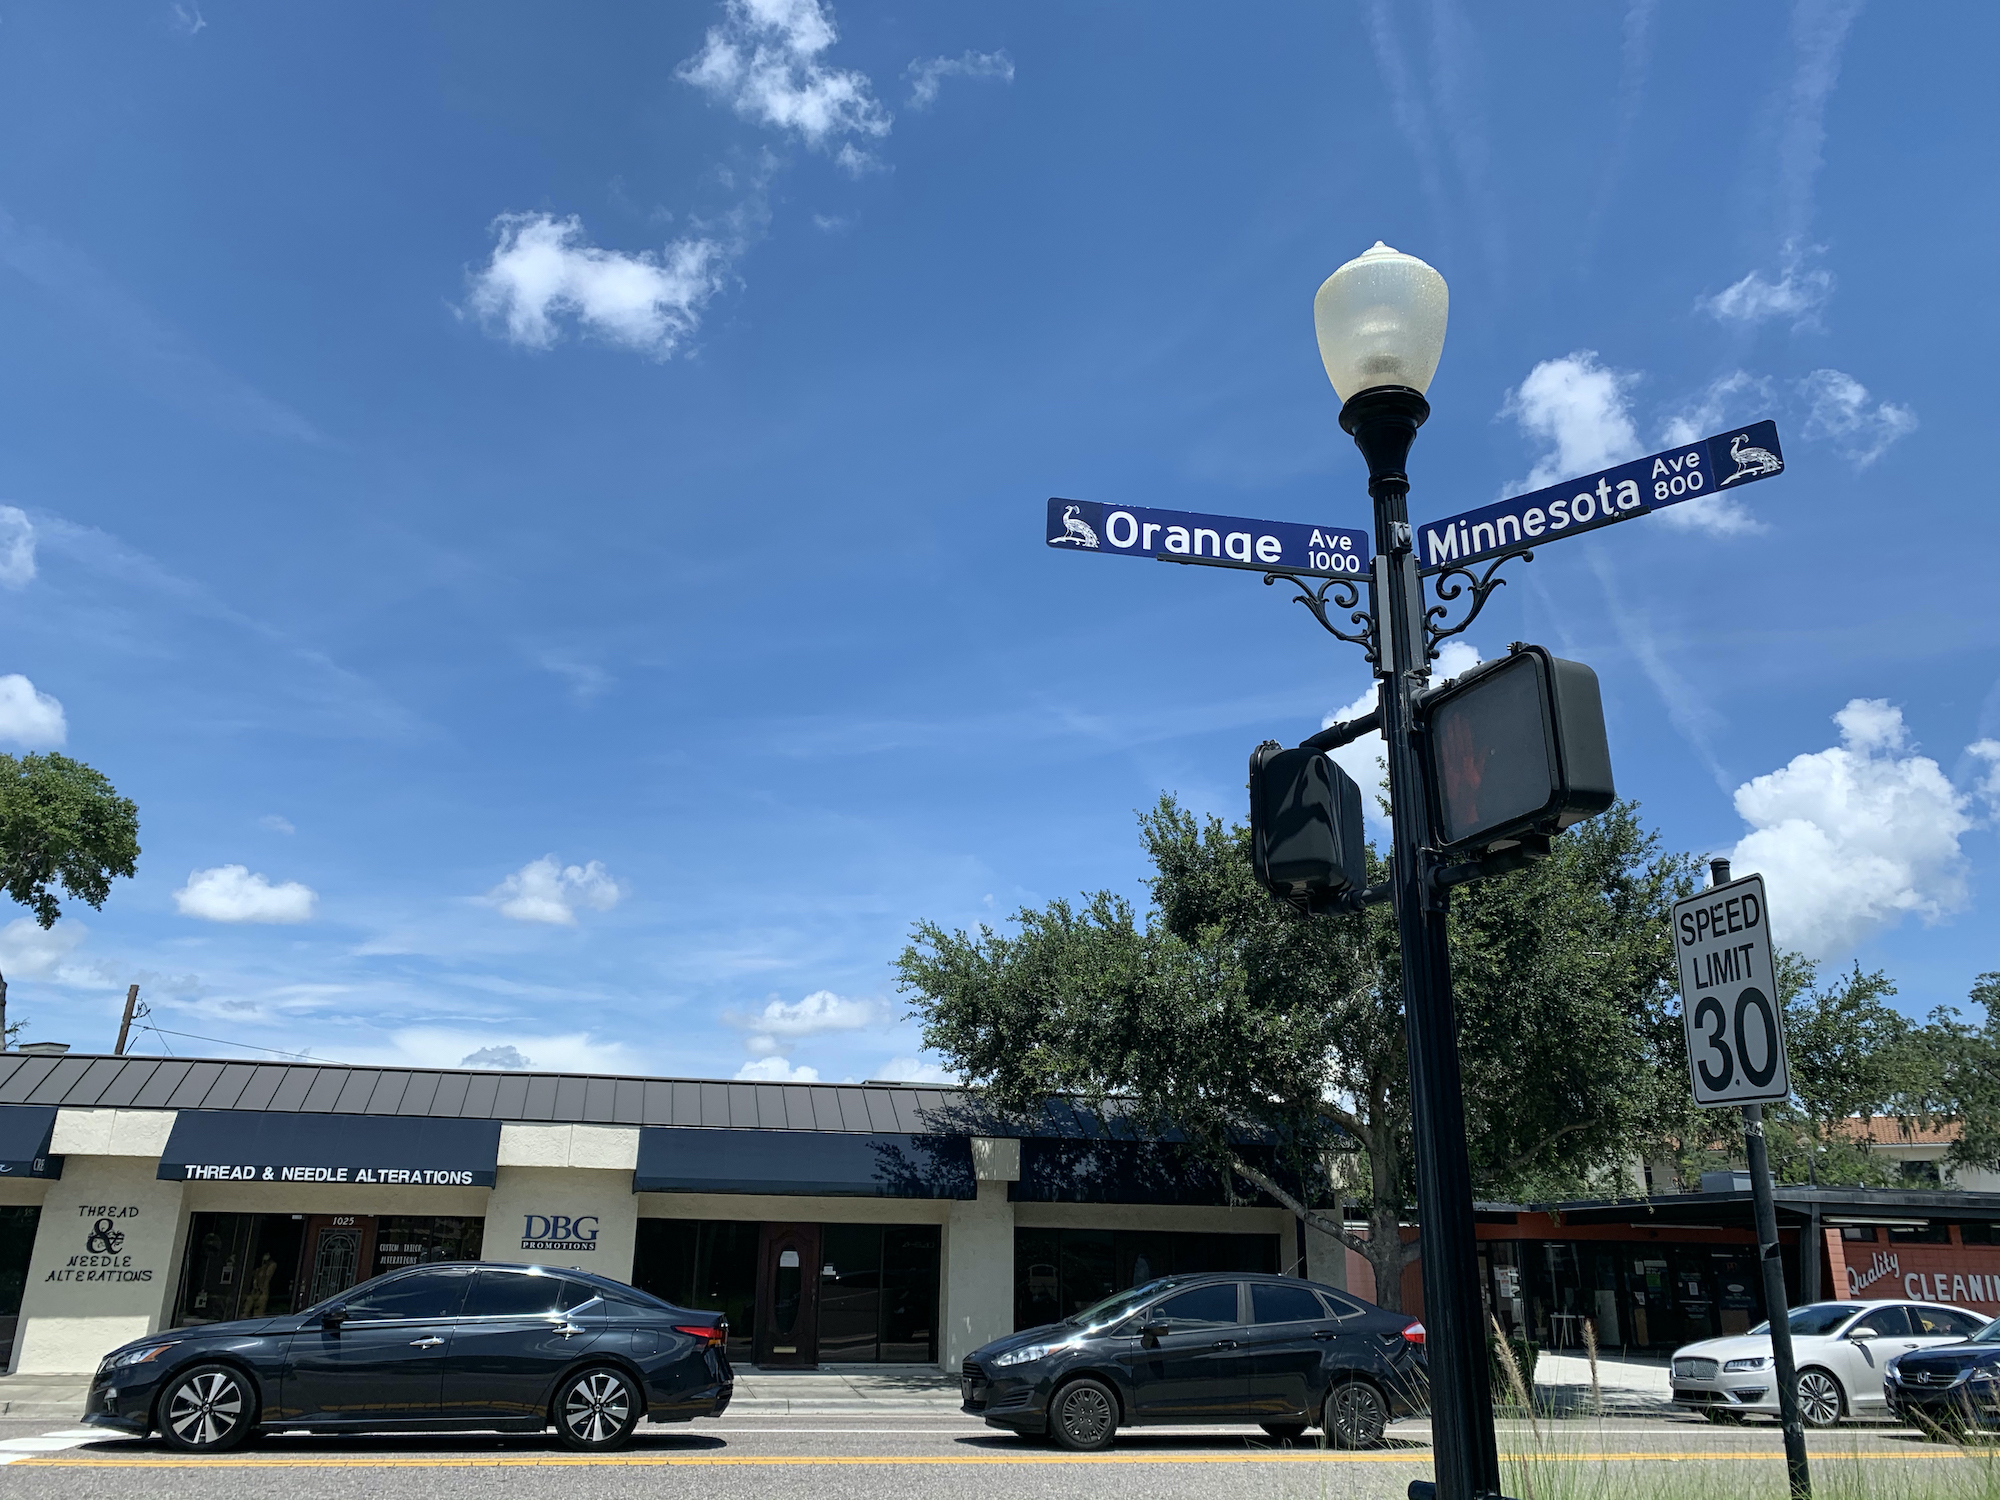 The intersection at Orange and Minnesota Avenues in Winter Park, Fla.